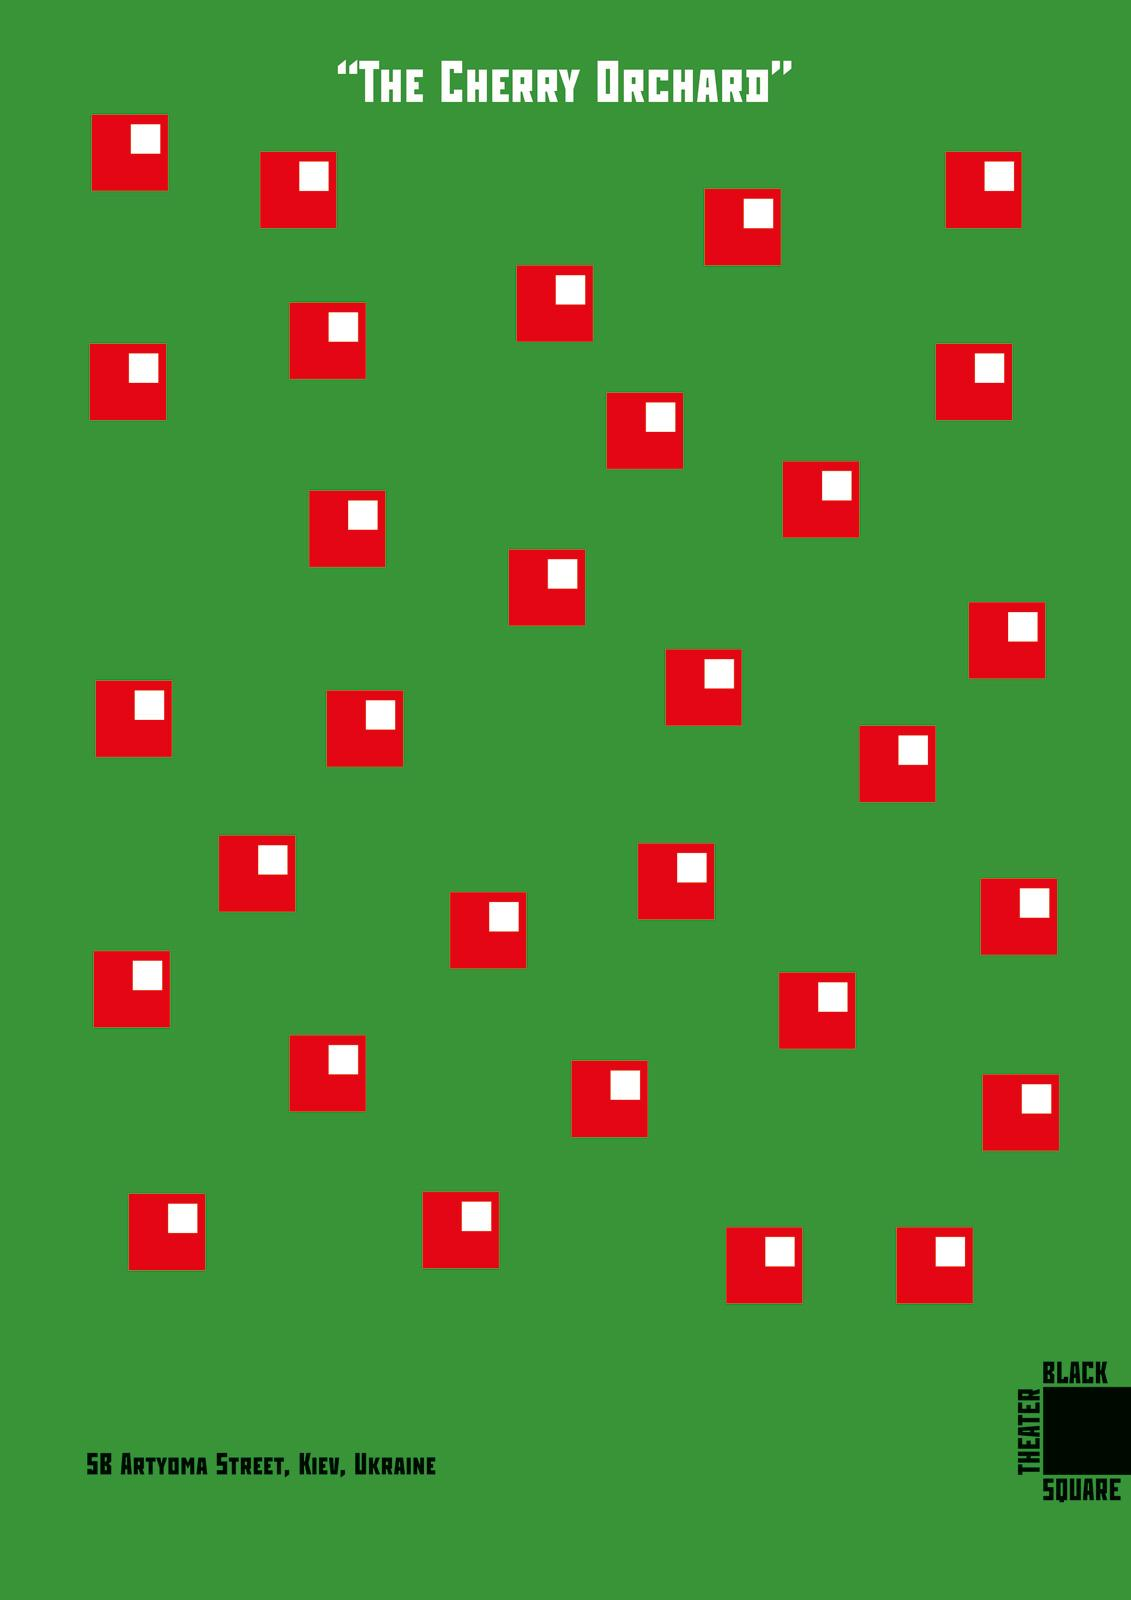 Black Square Theatre Outdoor Ad -  The Cherry Orchard